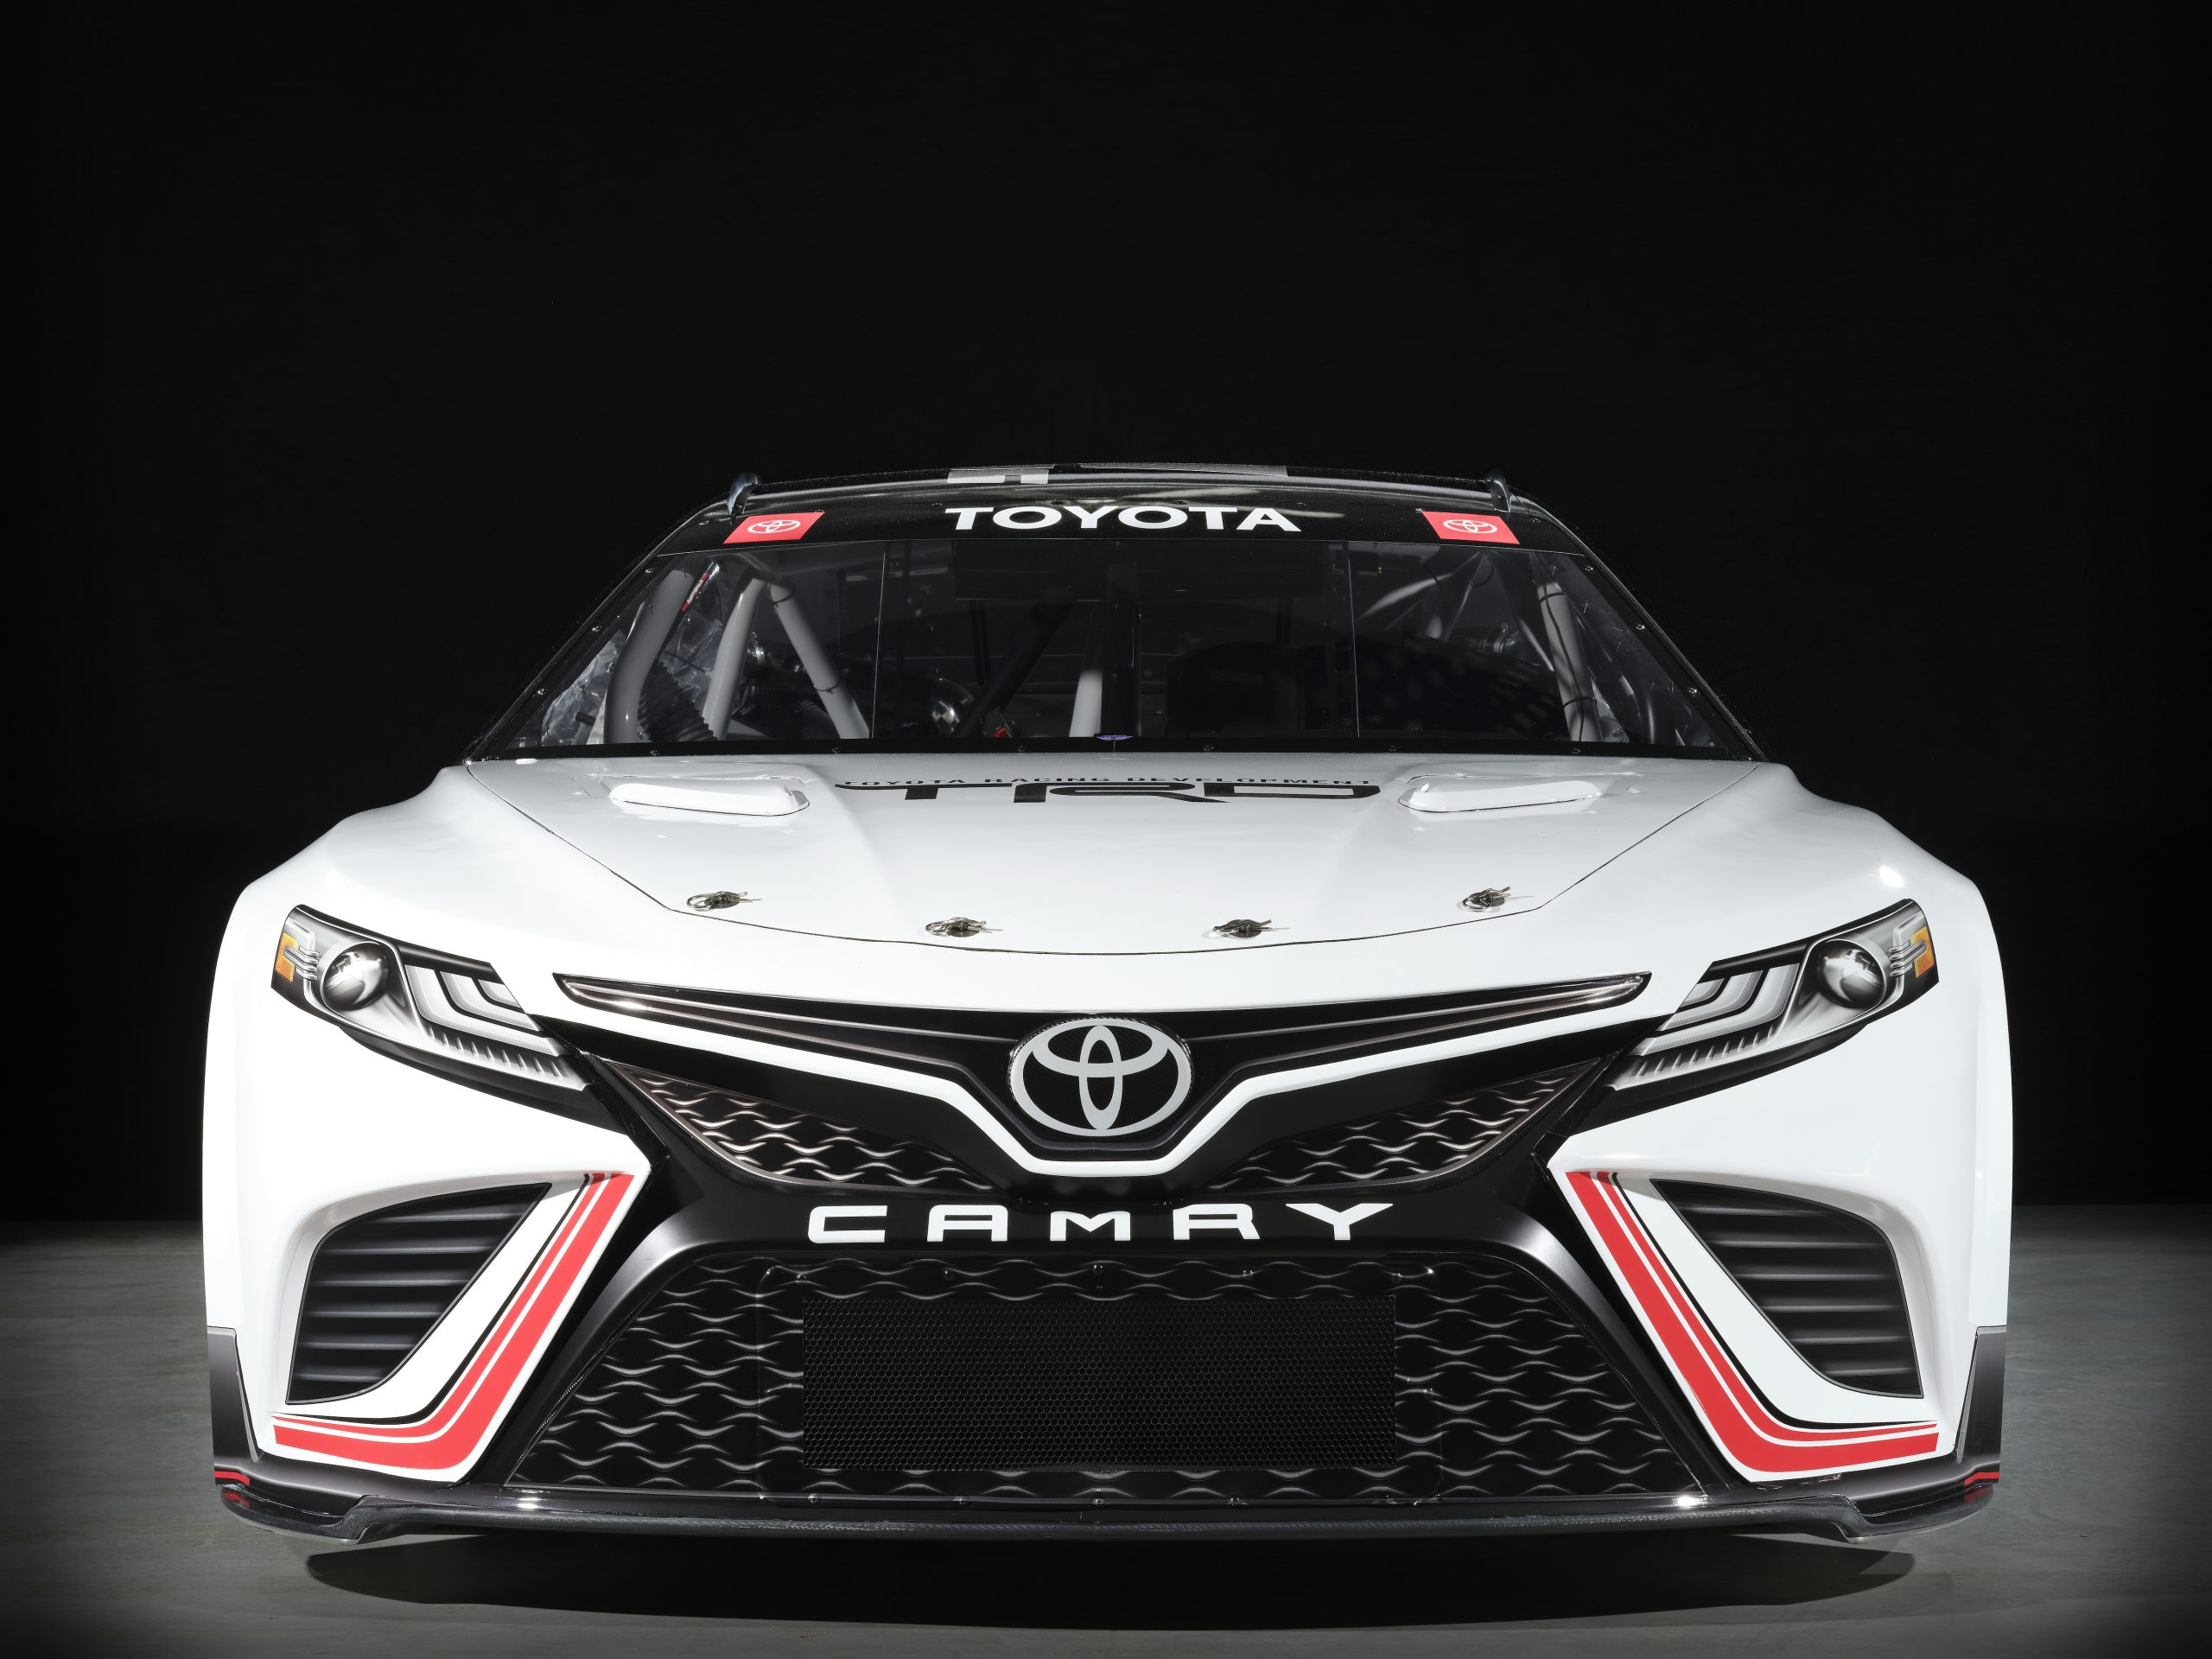 NASCAR Toyota Stock car camry front